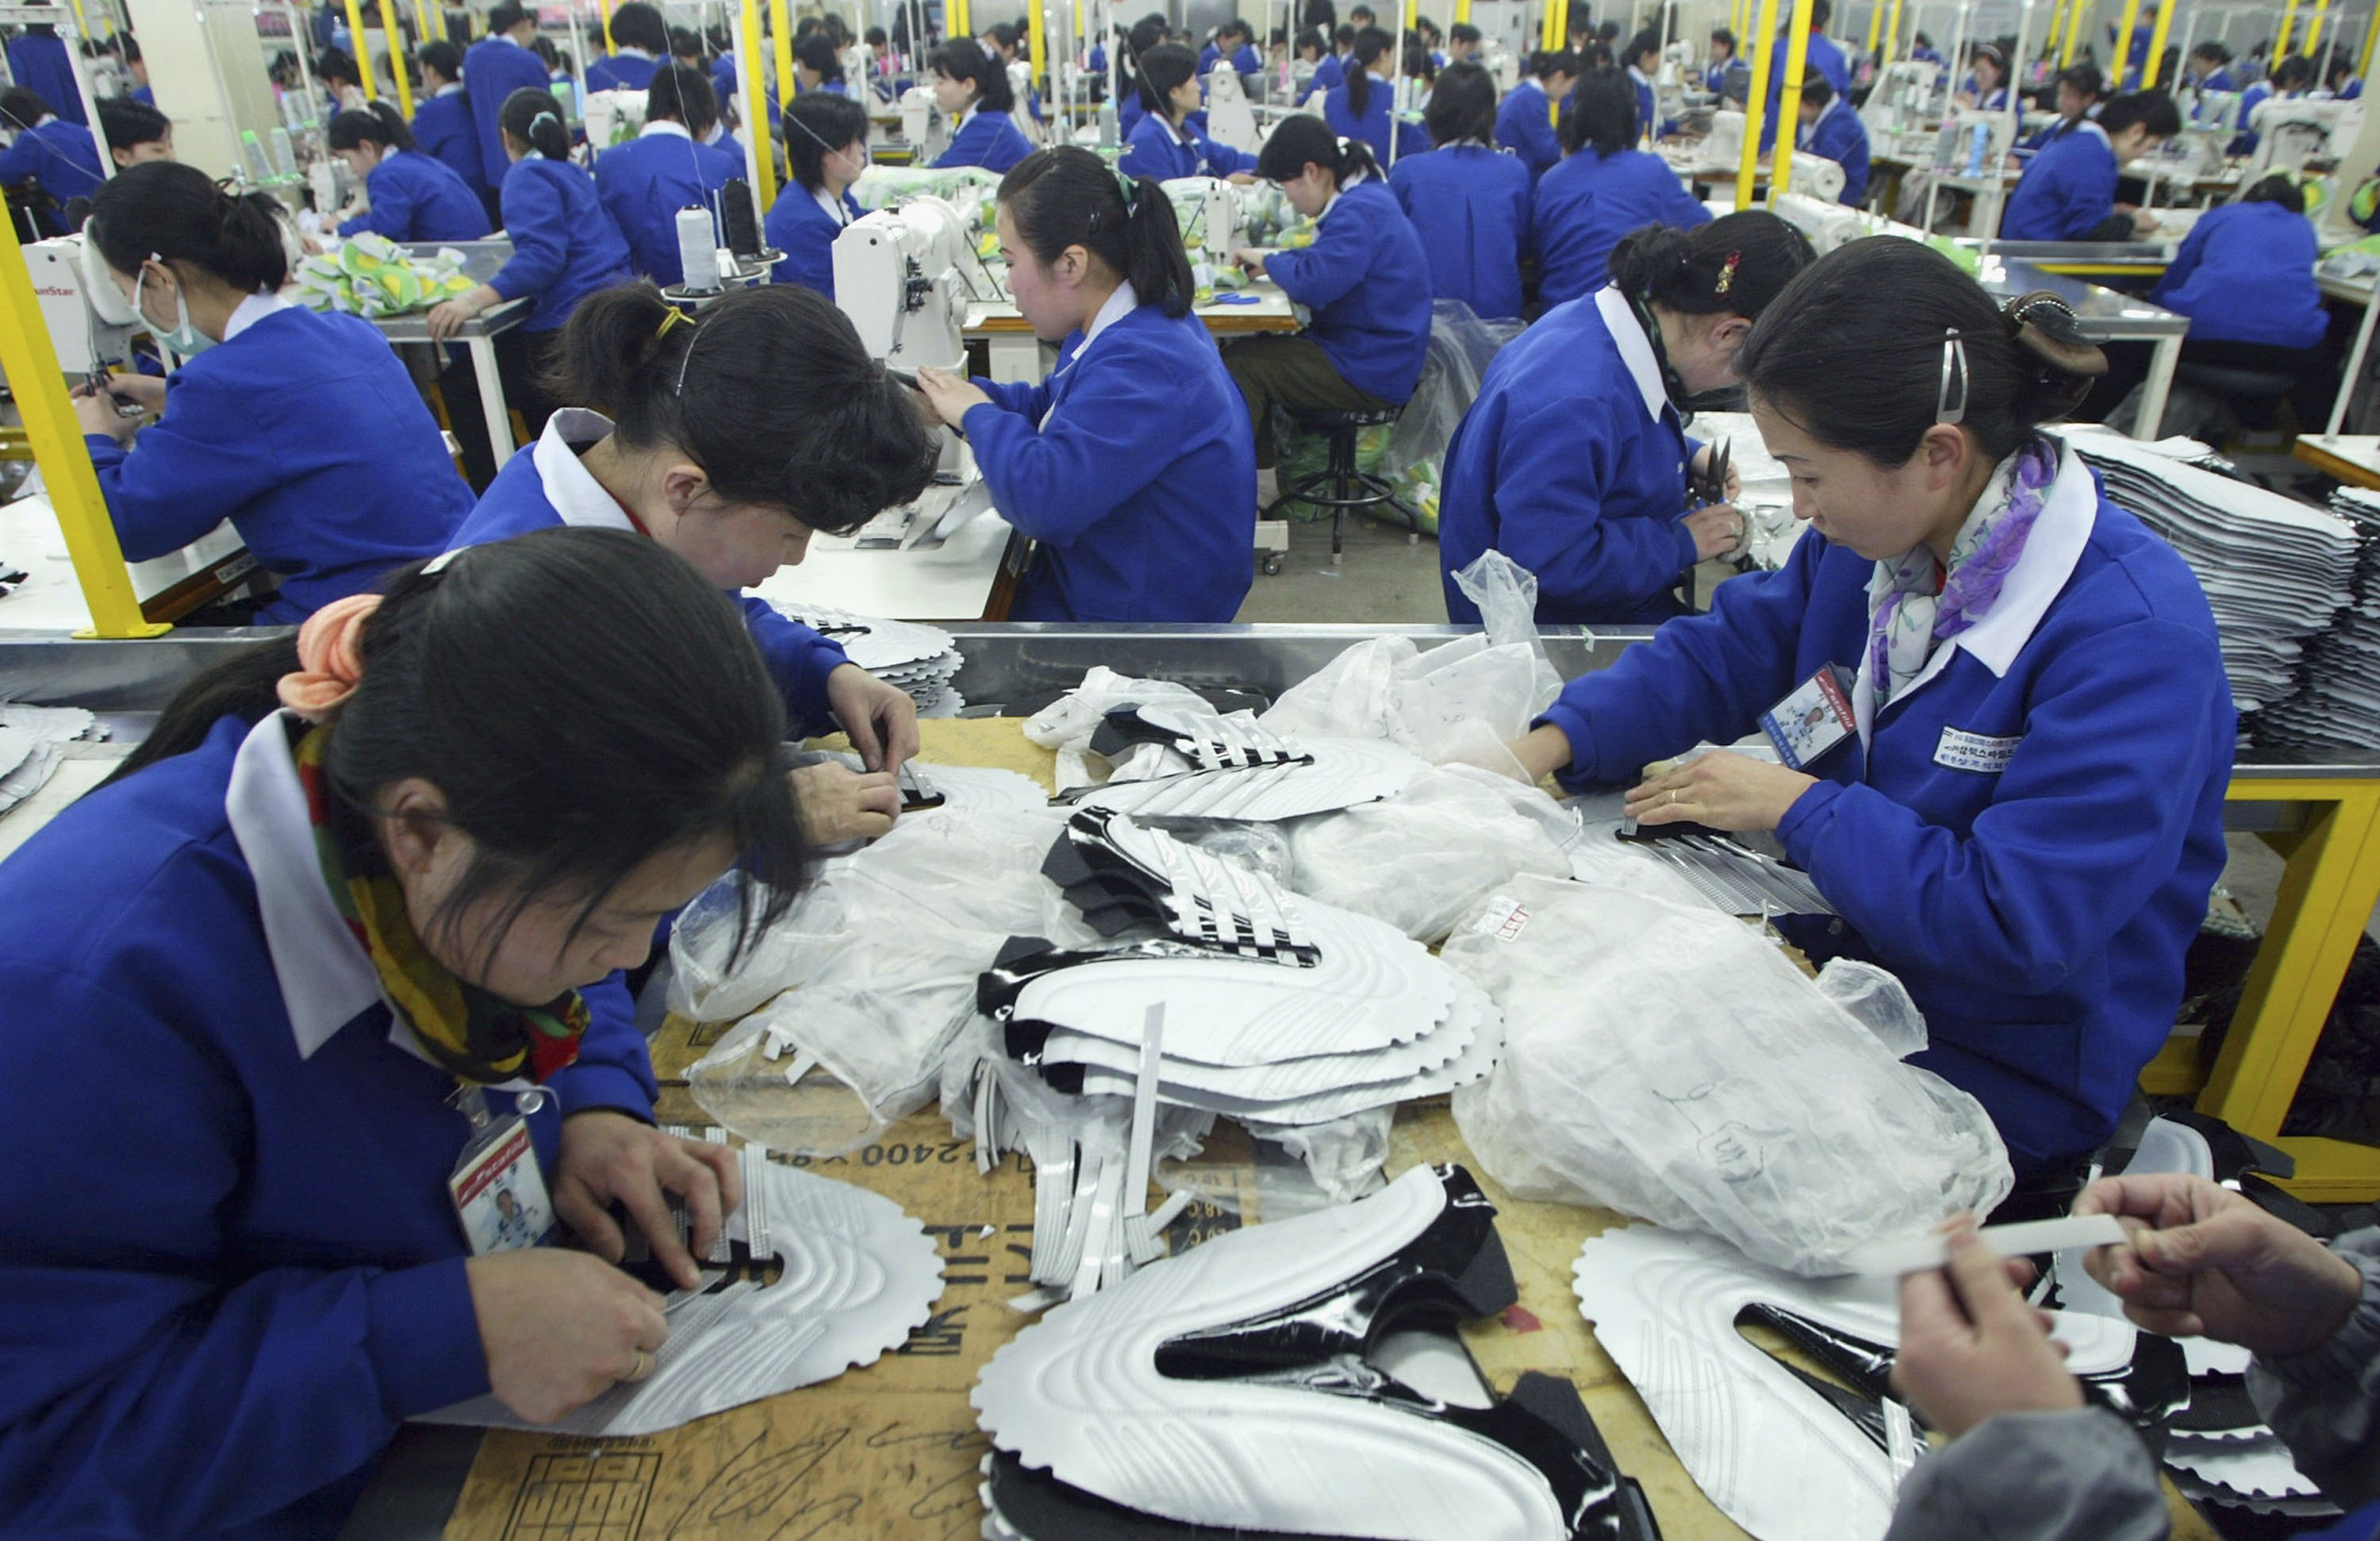 North Korean women work at the assembly line of the factory of shoemaker Samduk Inc. at the Kaesong industrial complex in Kaesong, North Korea on Feb. 27, 2006. (photo by Chung Sung-Jun/Getty Images)